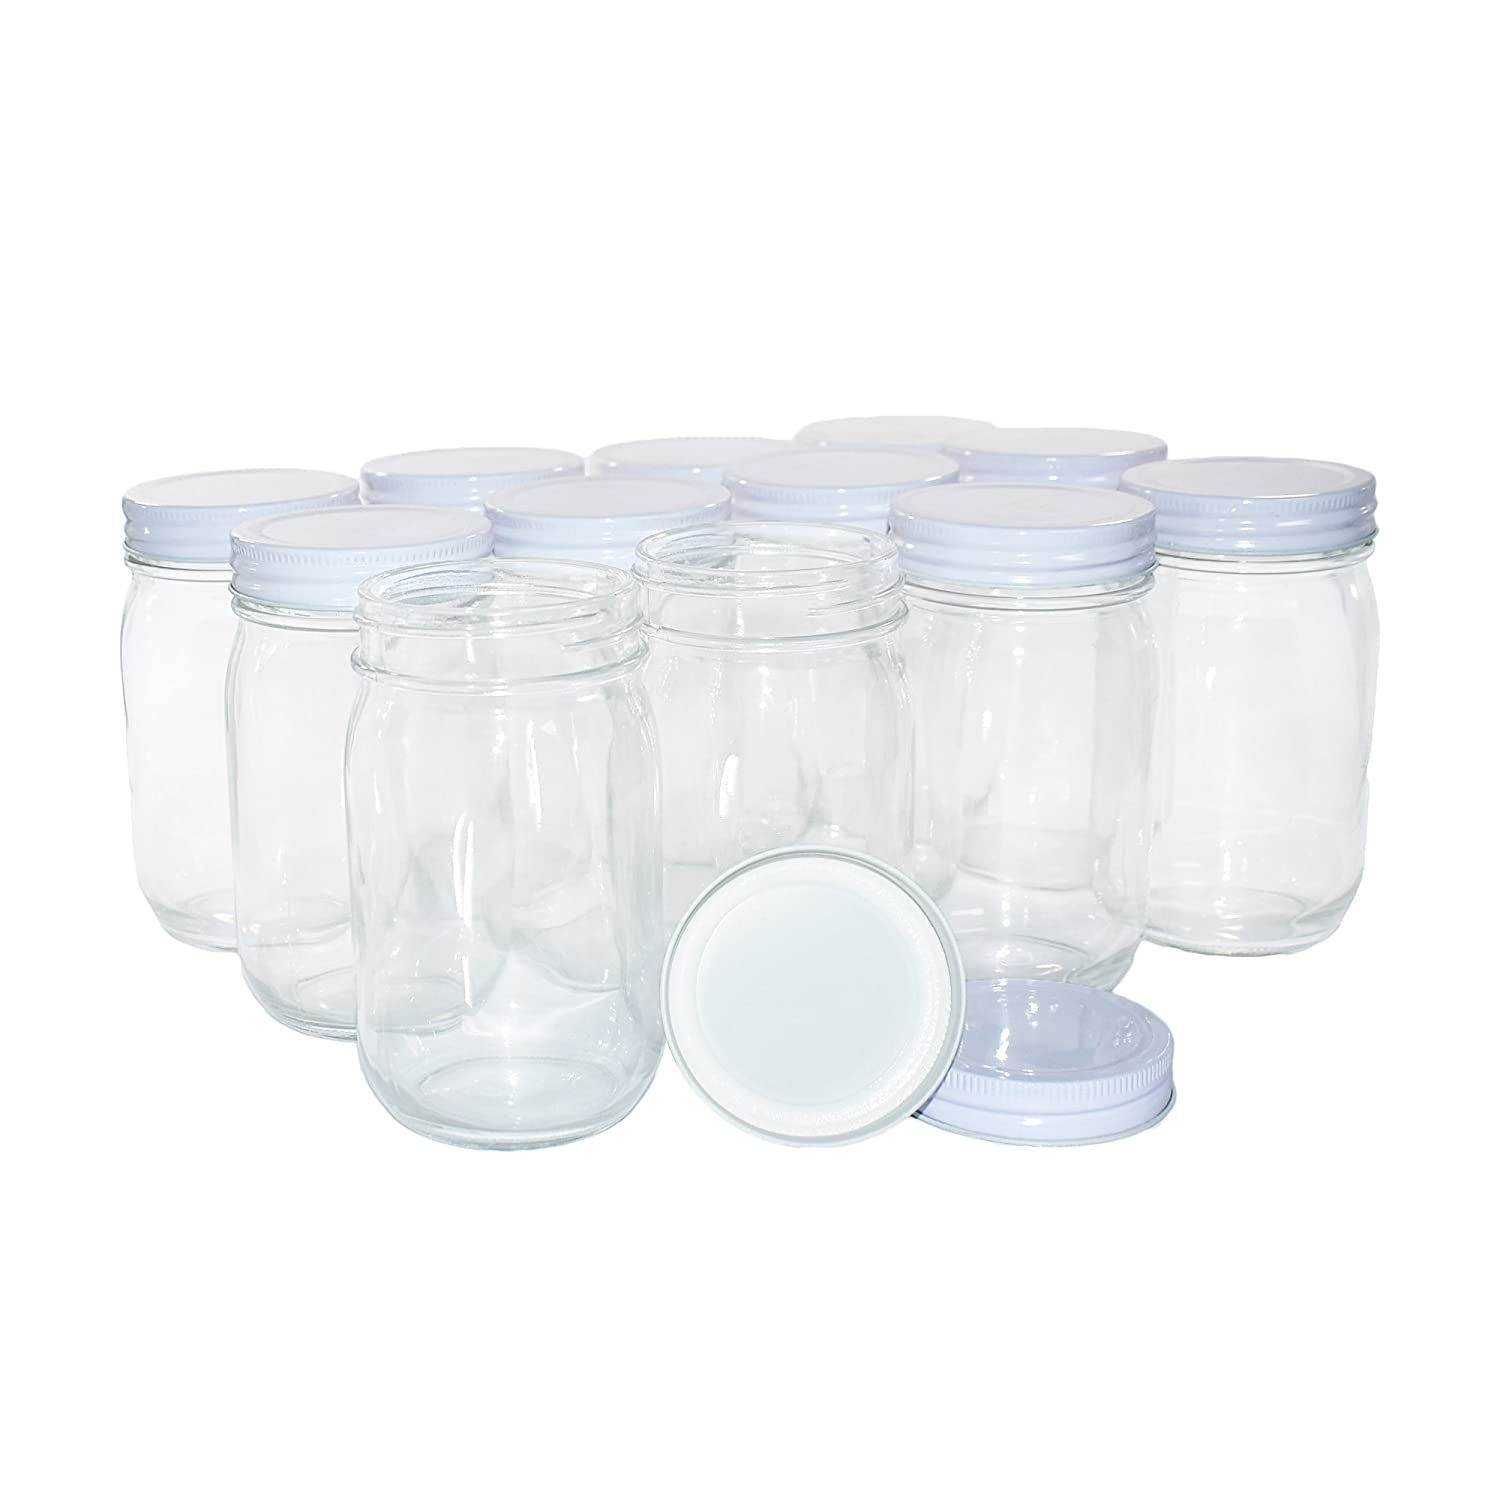 12 Pack Clear Glass Old-Fashioned Jars With Metal Lid (with seal) 16oz Never Pay Retail Again Inc. NA